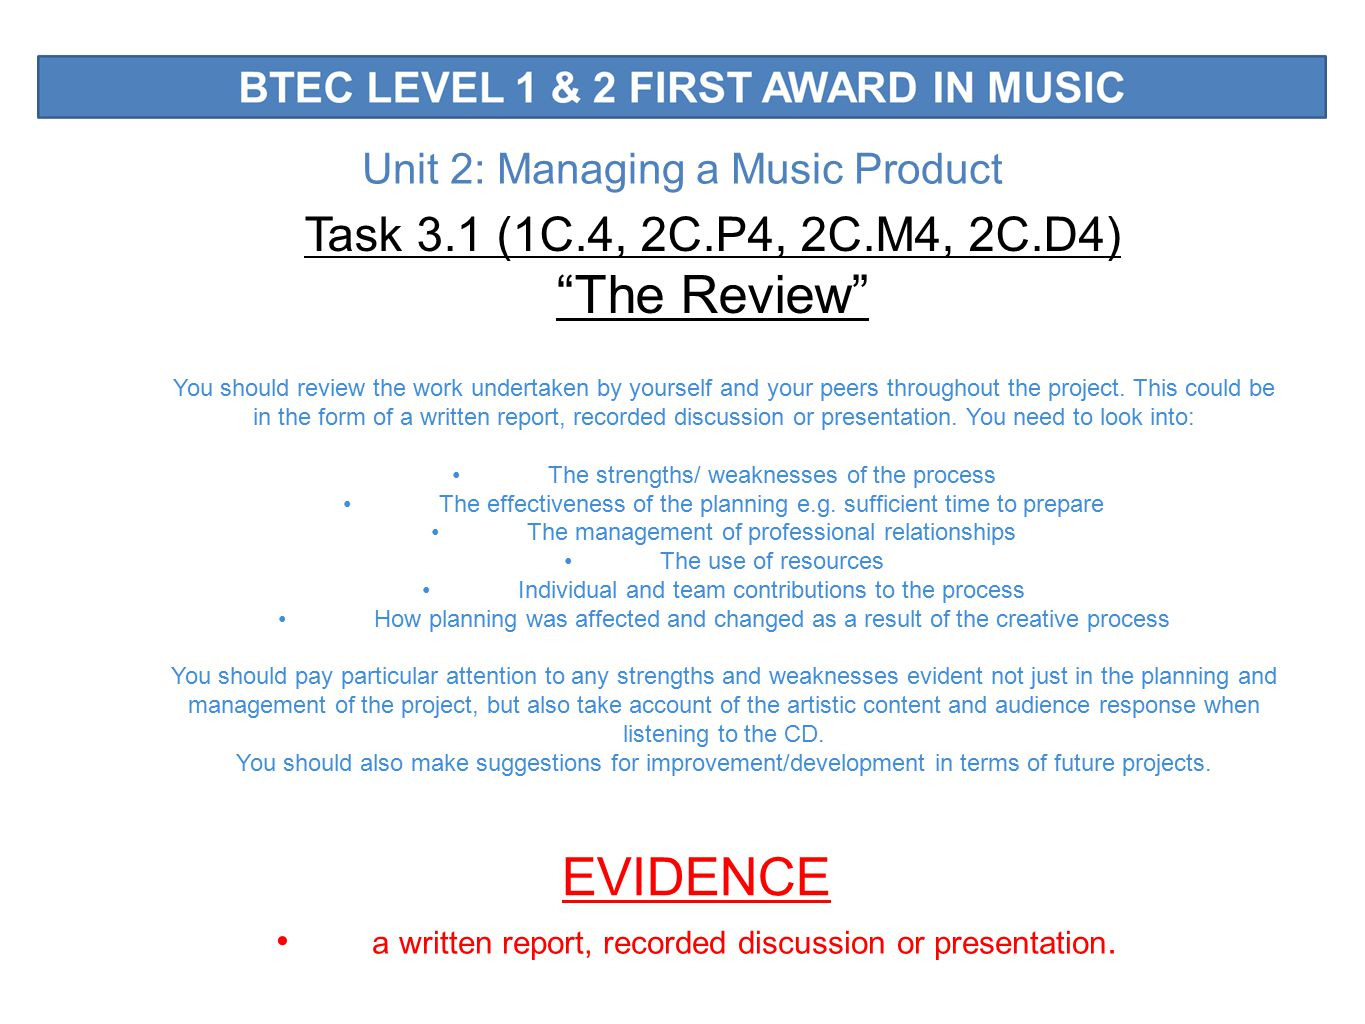 Unit 2: Managing a Music Product Task 3.1 (1C.4, 2C.P4, 2C.M4, 2C.D4) The Review You should review the work undertaken by yourself and your peers throughout the project.